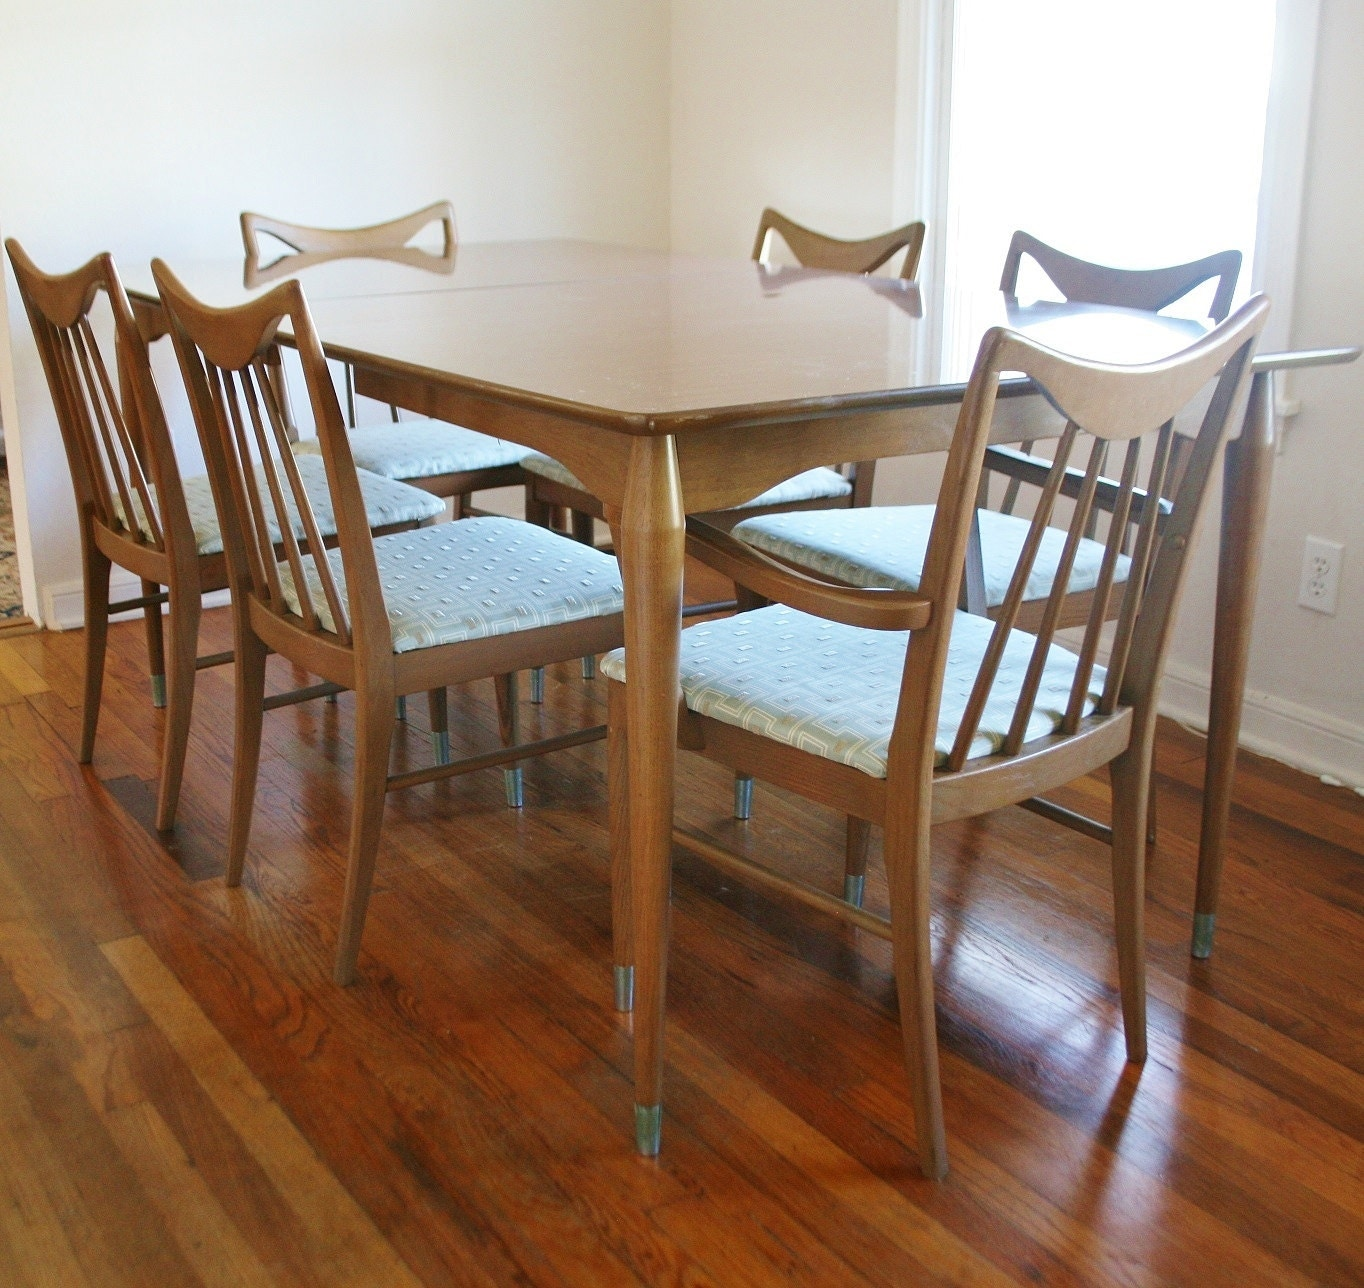 brushed aluminum chairs orthopedic for back pain mid century keller dining set wood and formica by sariloaf